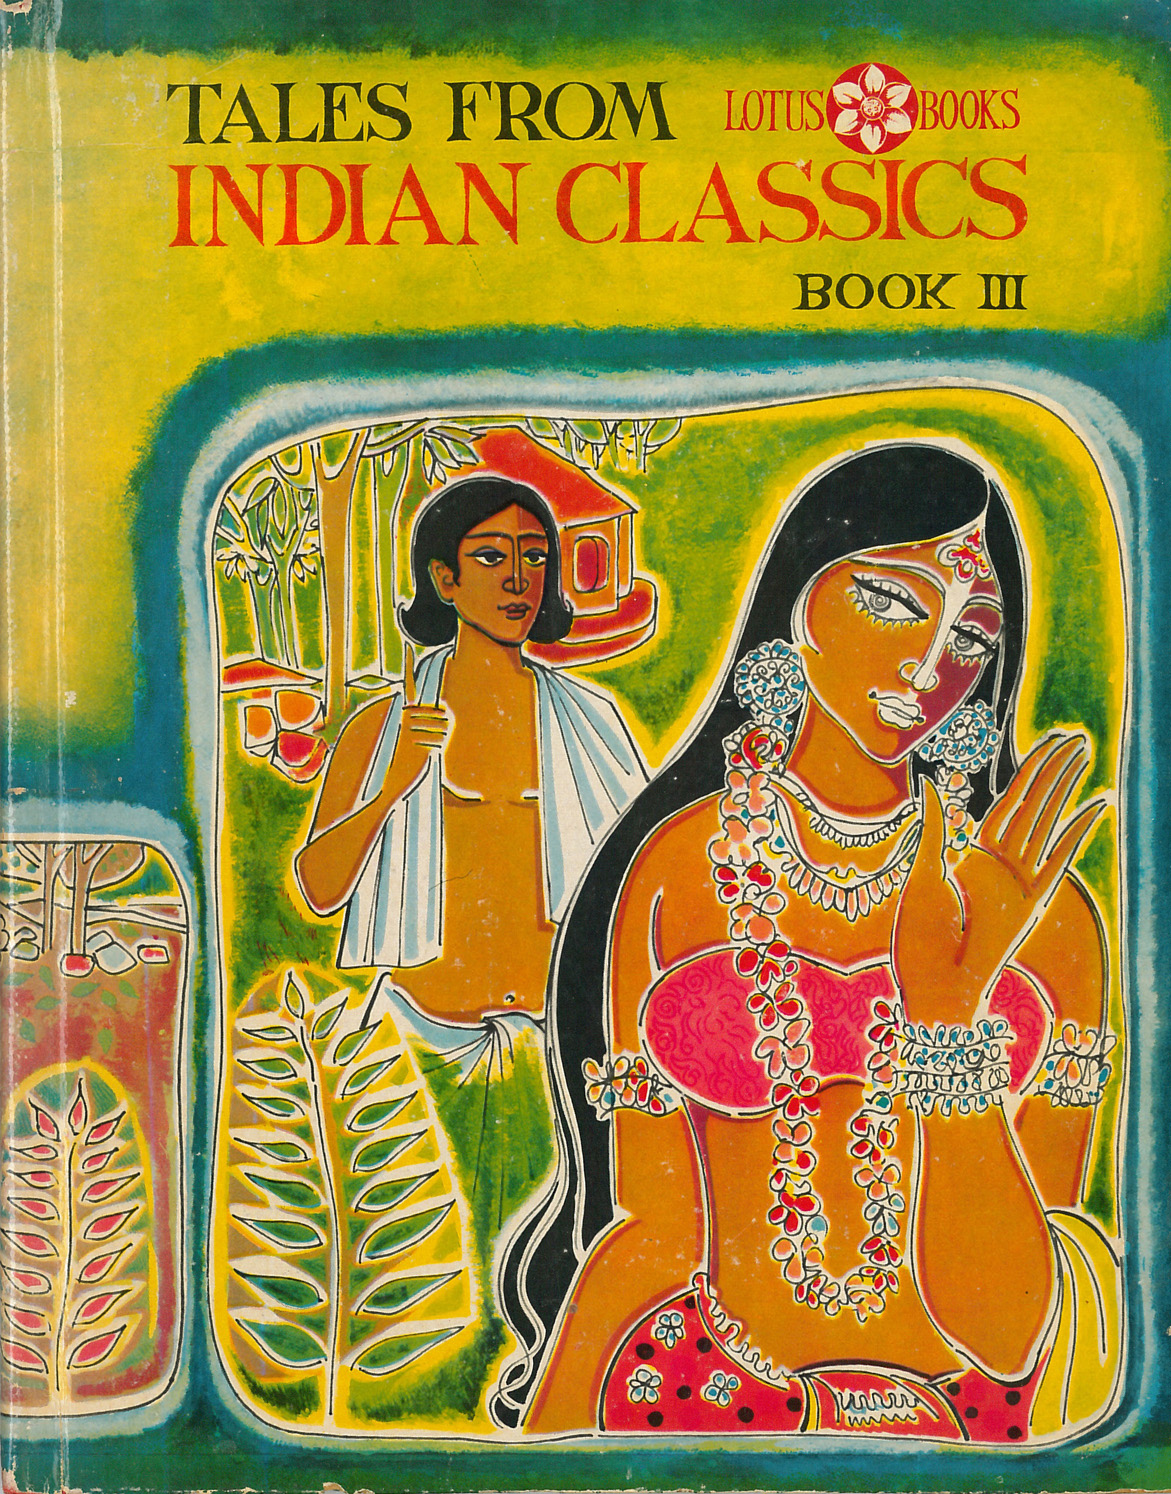 Tales from indian classics